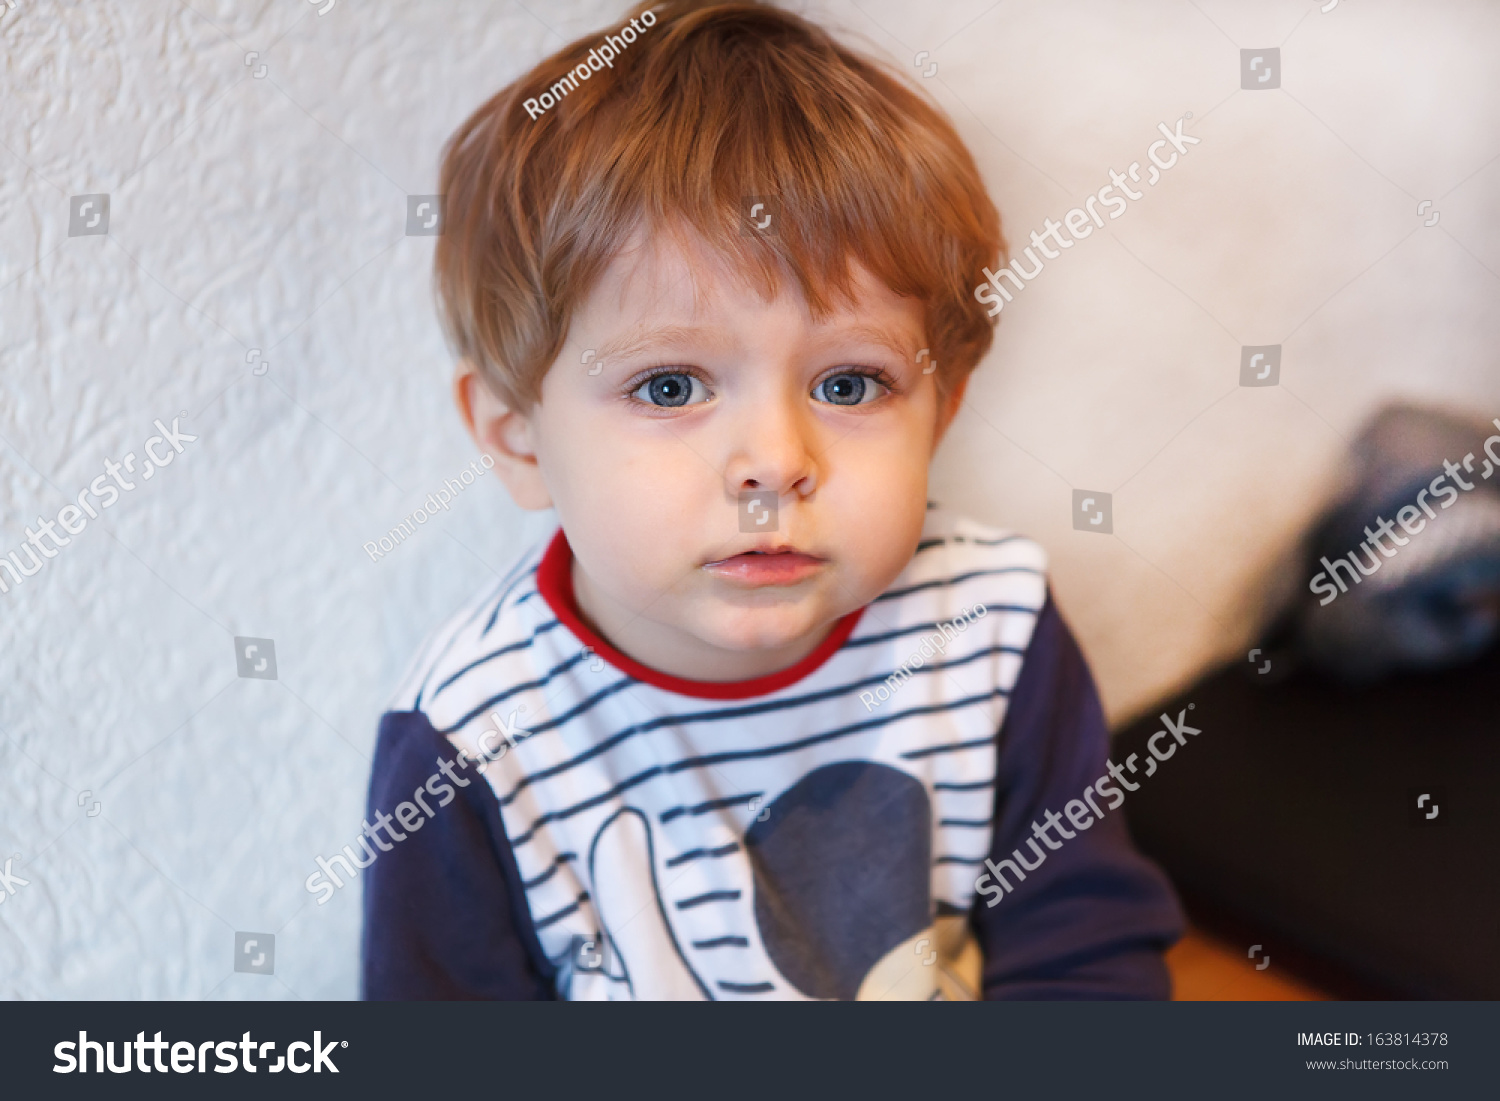 pics for gt toddler boy with brown hair and blue eyes